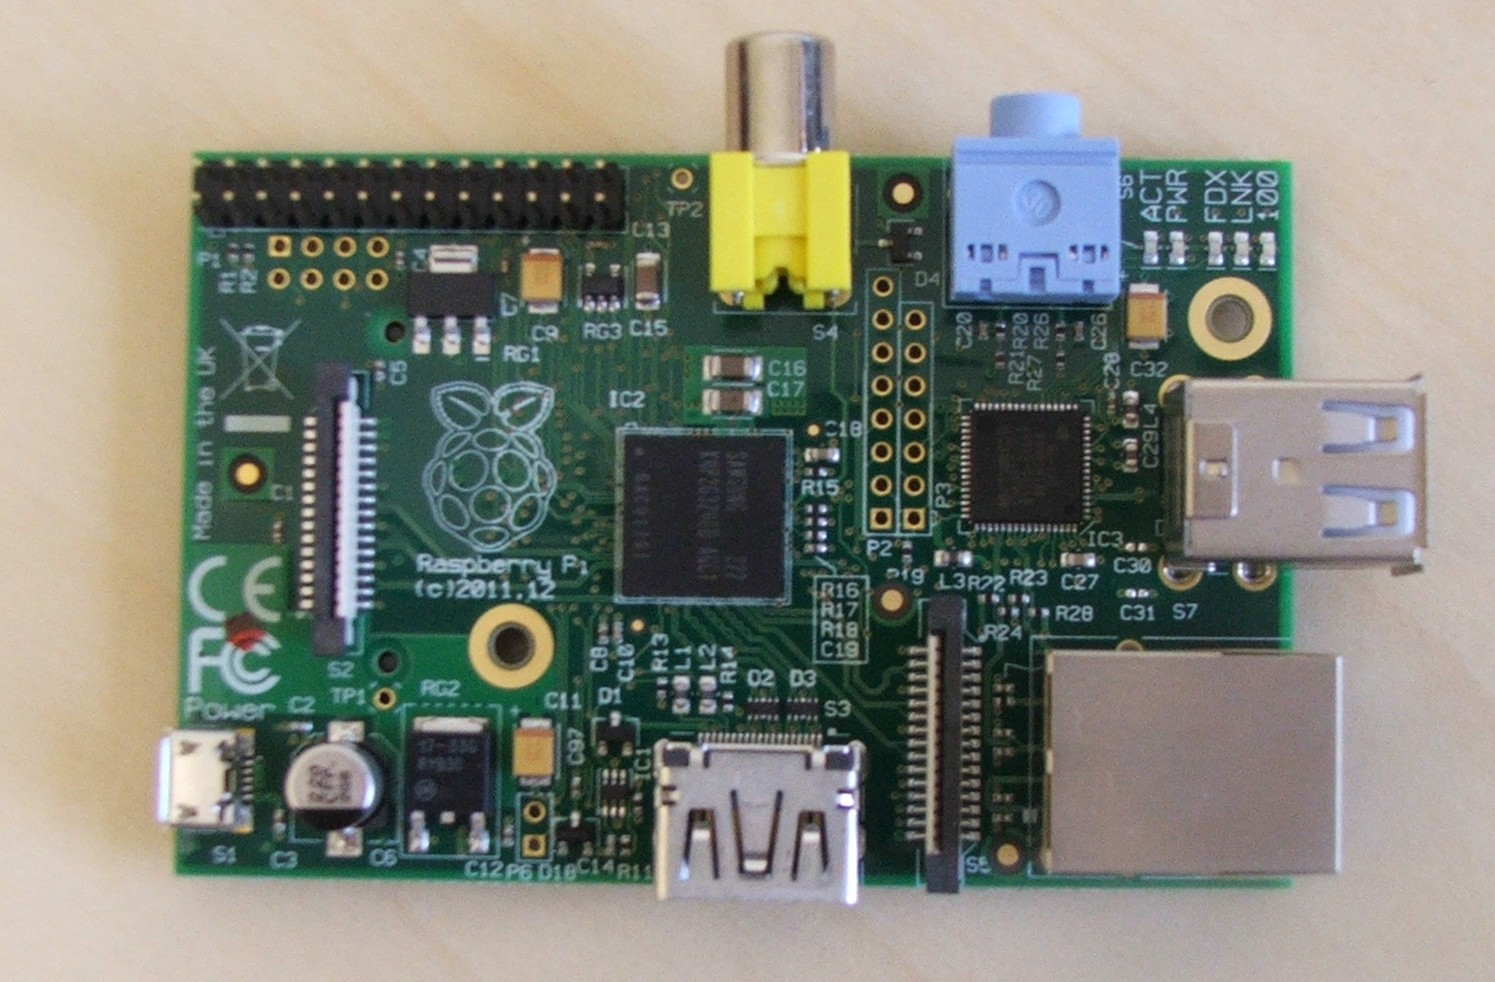 Openwrt raspberry pi 3 image download